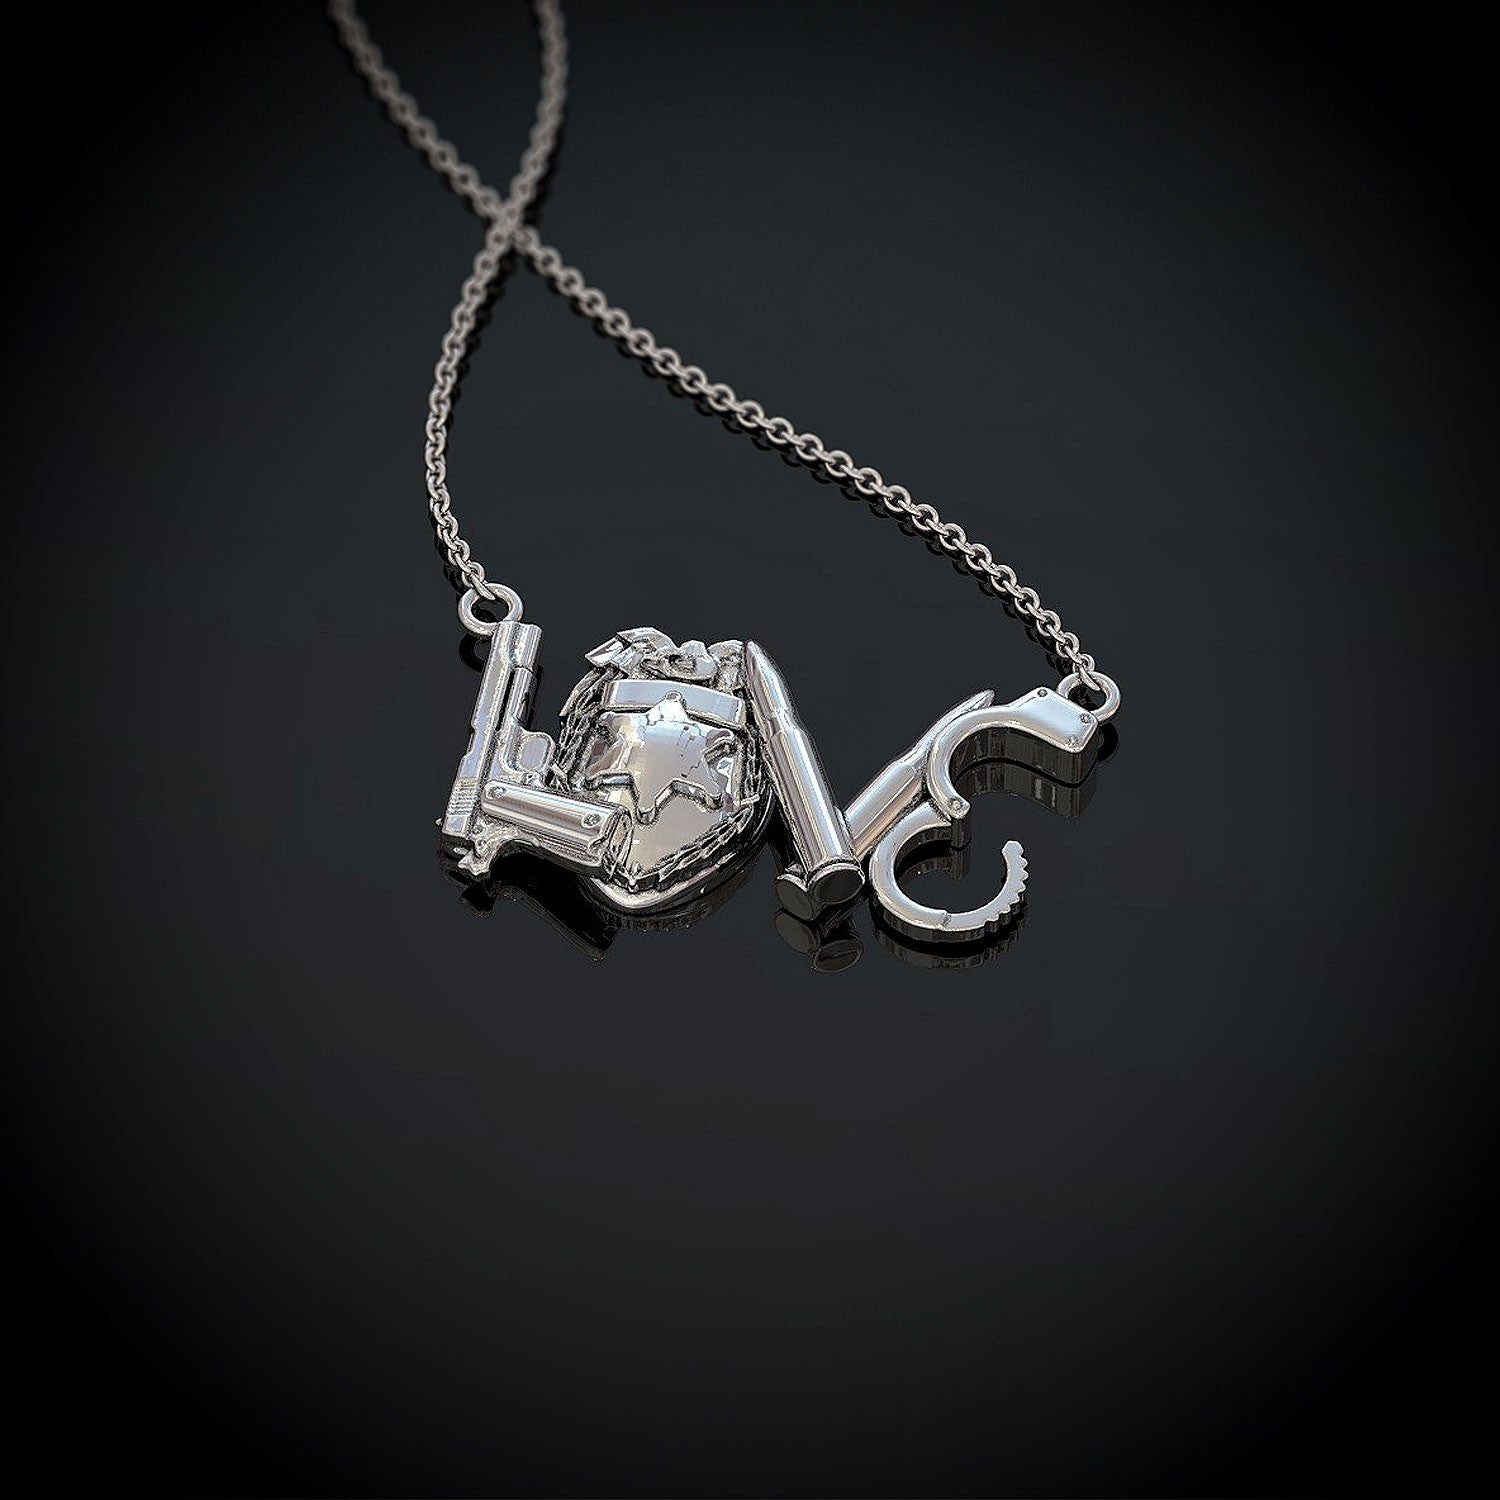 Police LOVE Pendant Necklace